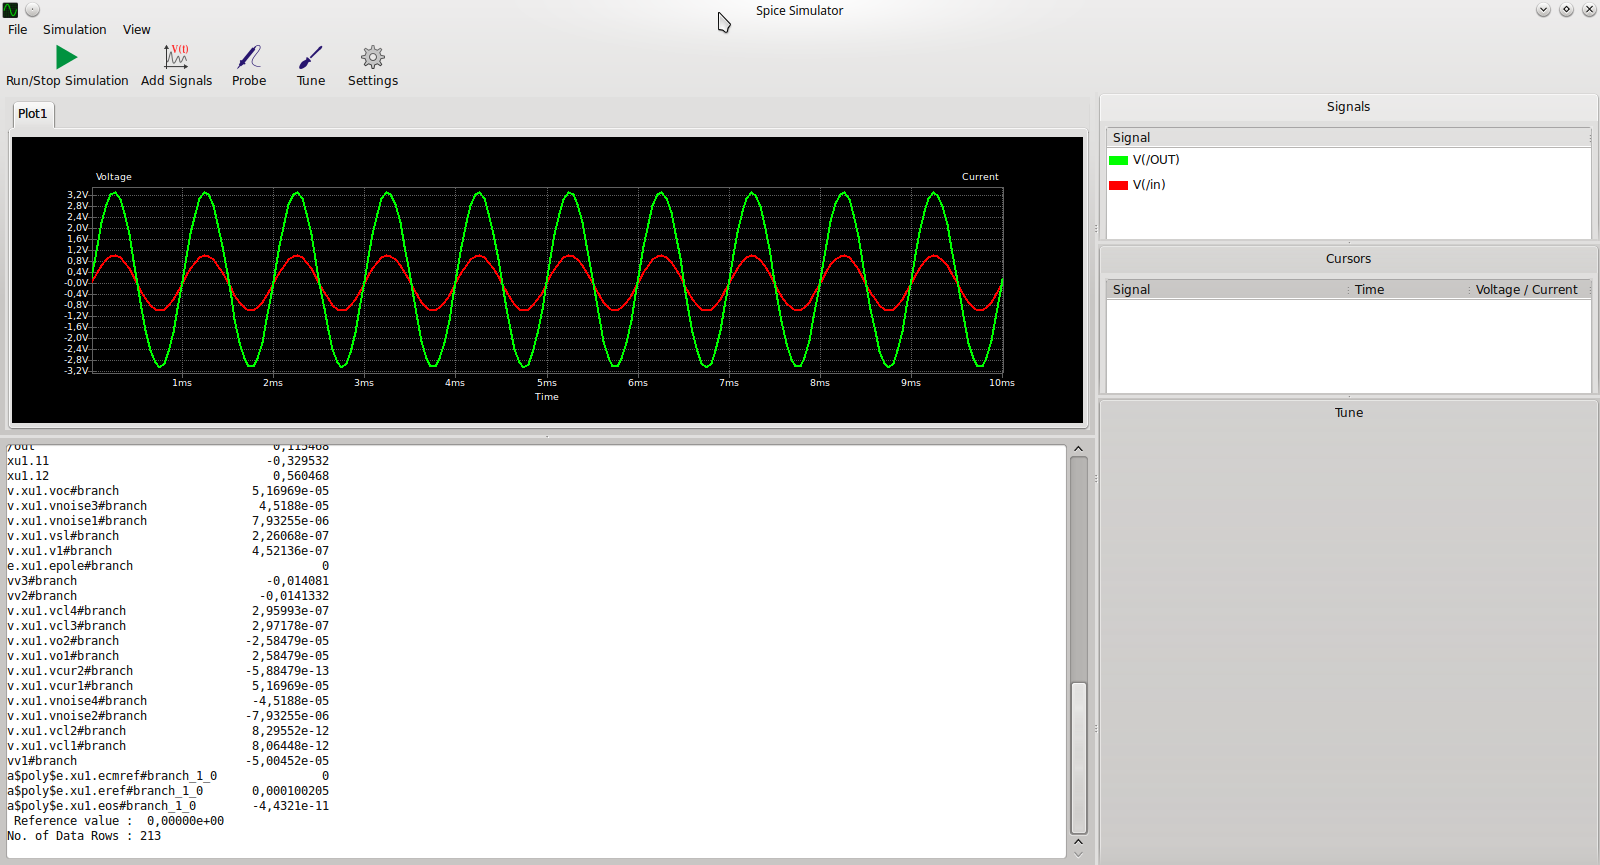 Simulating Non Inverting Operational Amplifier With Integrated Ubuntu Circuit Simulator And Output From Simulation